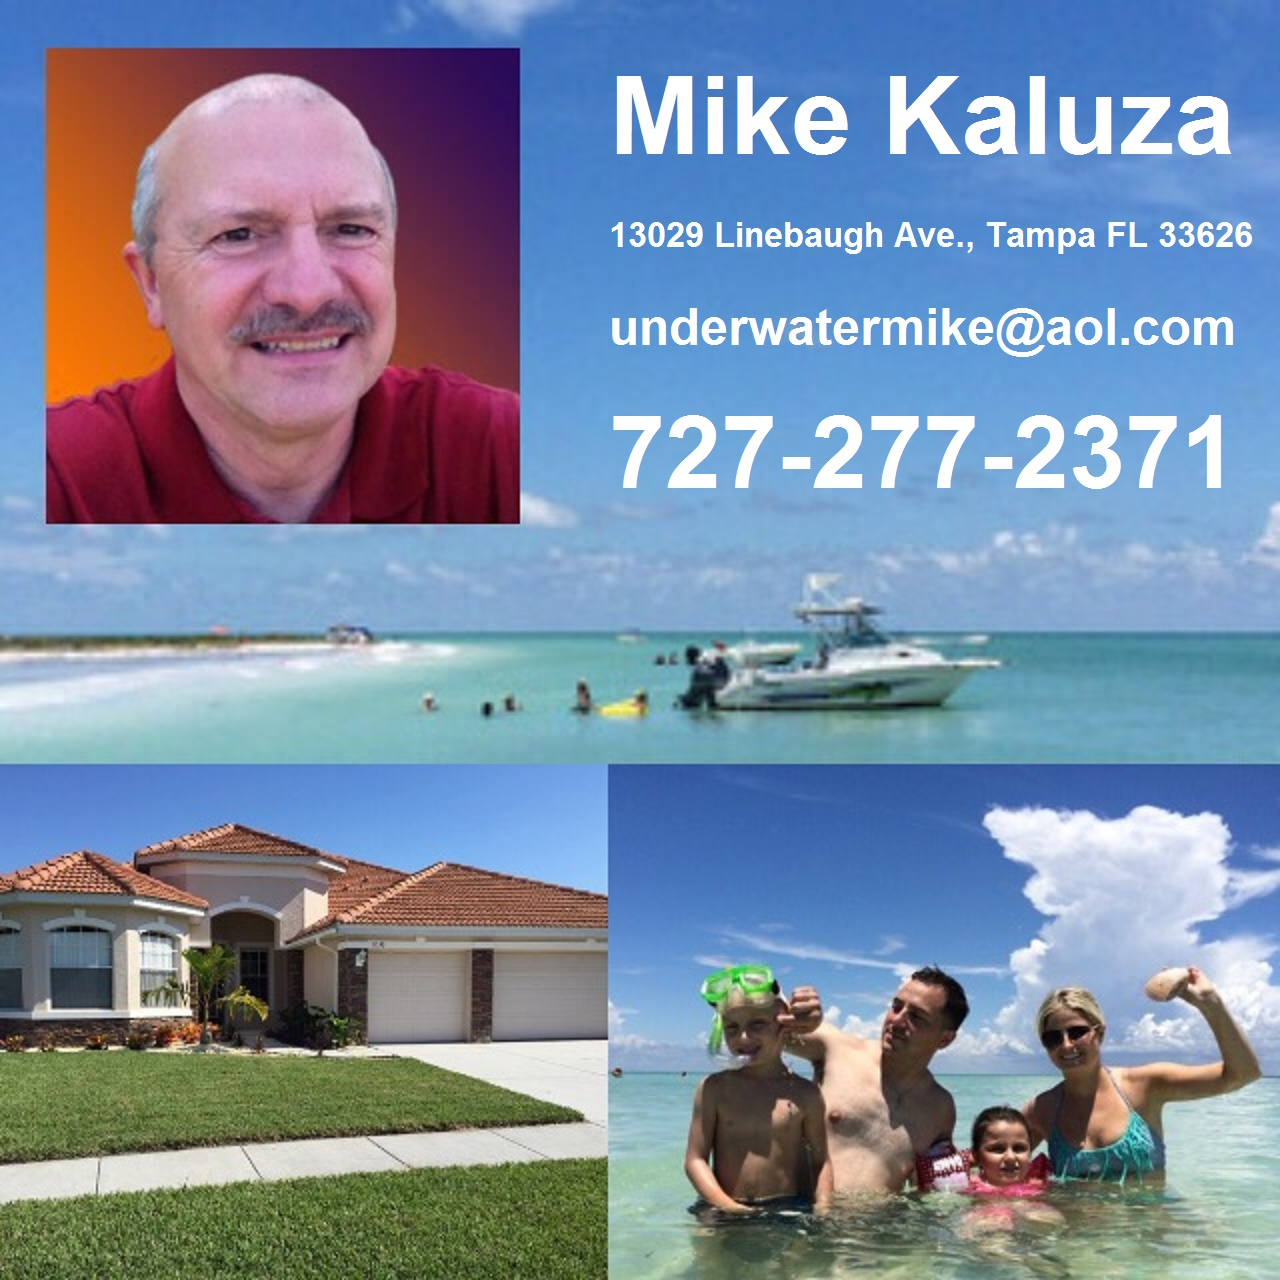 Mike Kaluza - Realtor at Future Home Realty 13029 Linebaugh Ave., Tampa FL 33626 (727) 277 - 2371 underwatermike@aol.com